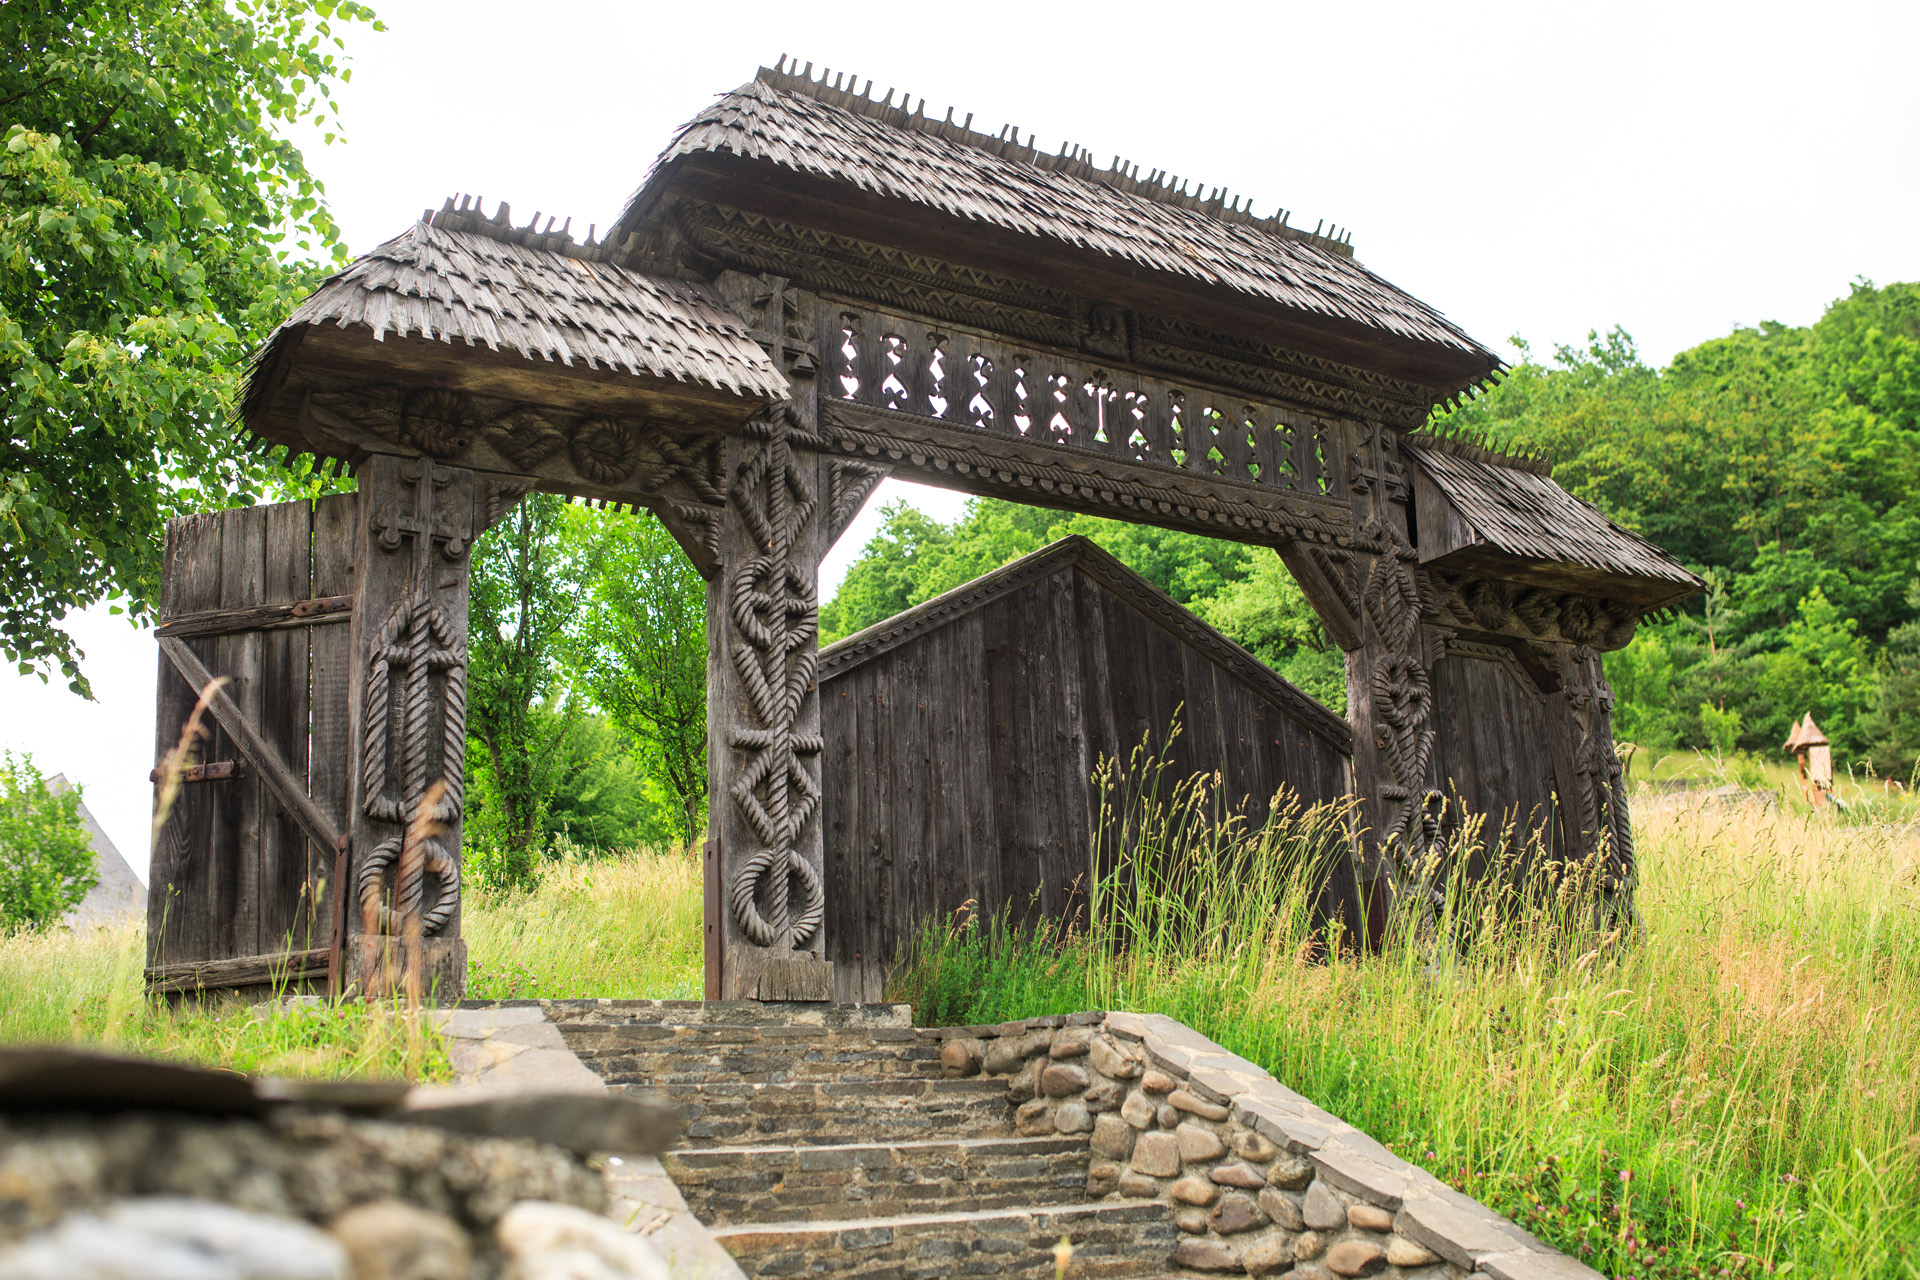 Front Gate in the Maramuresean Style